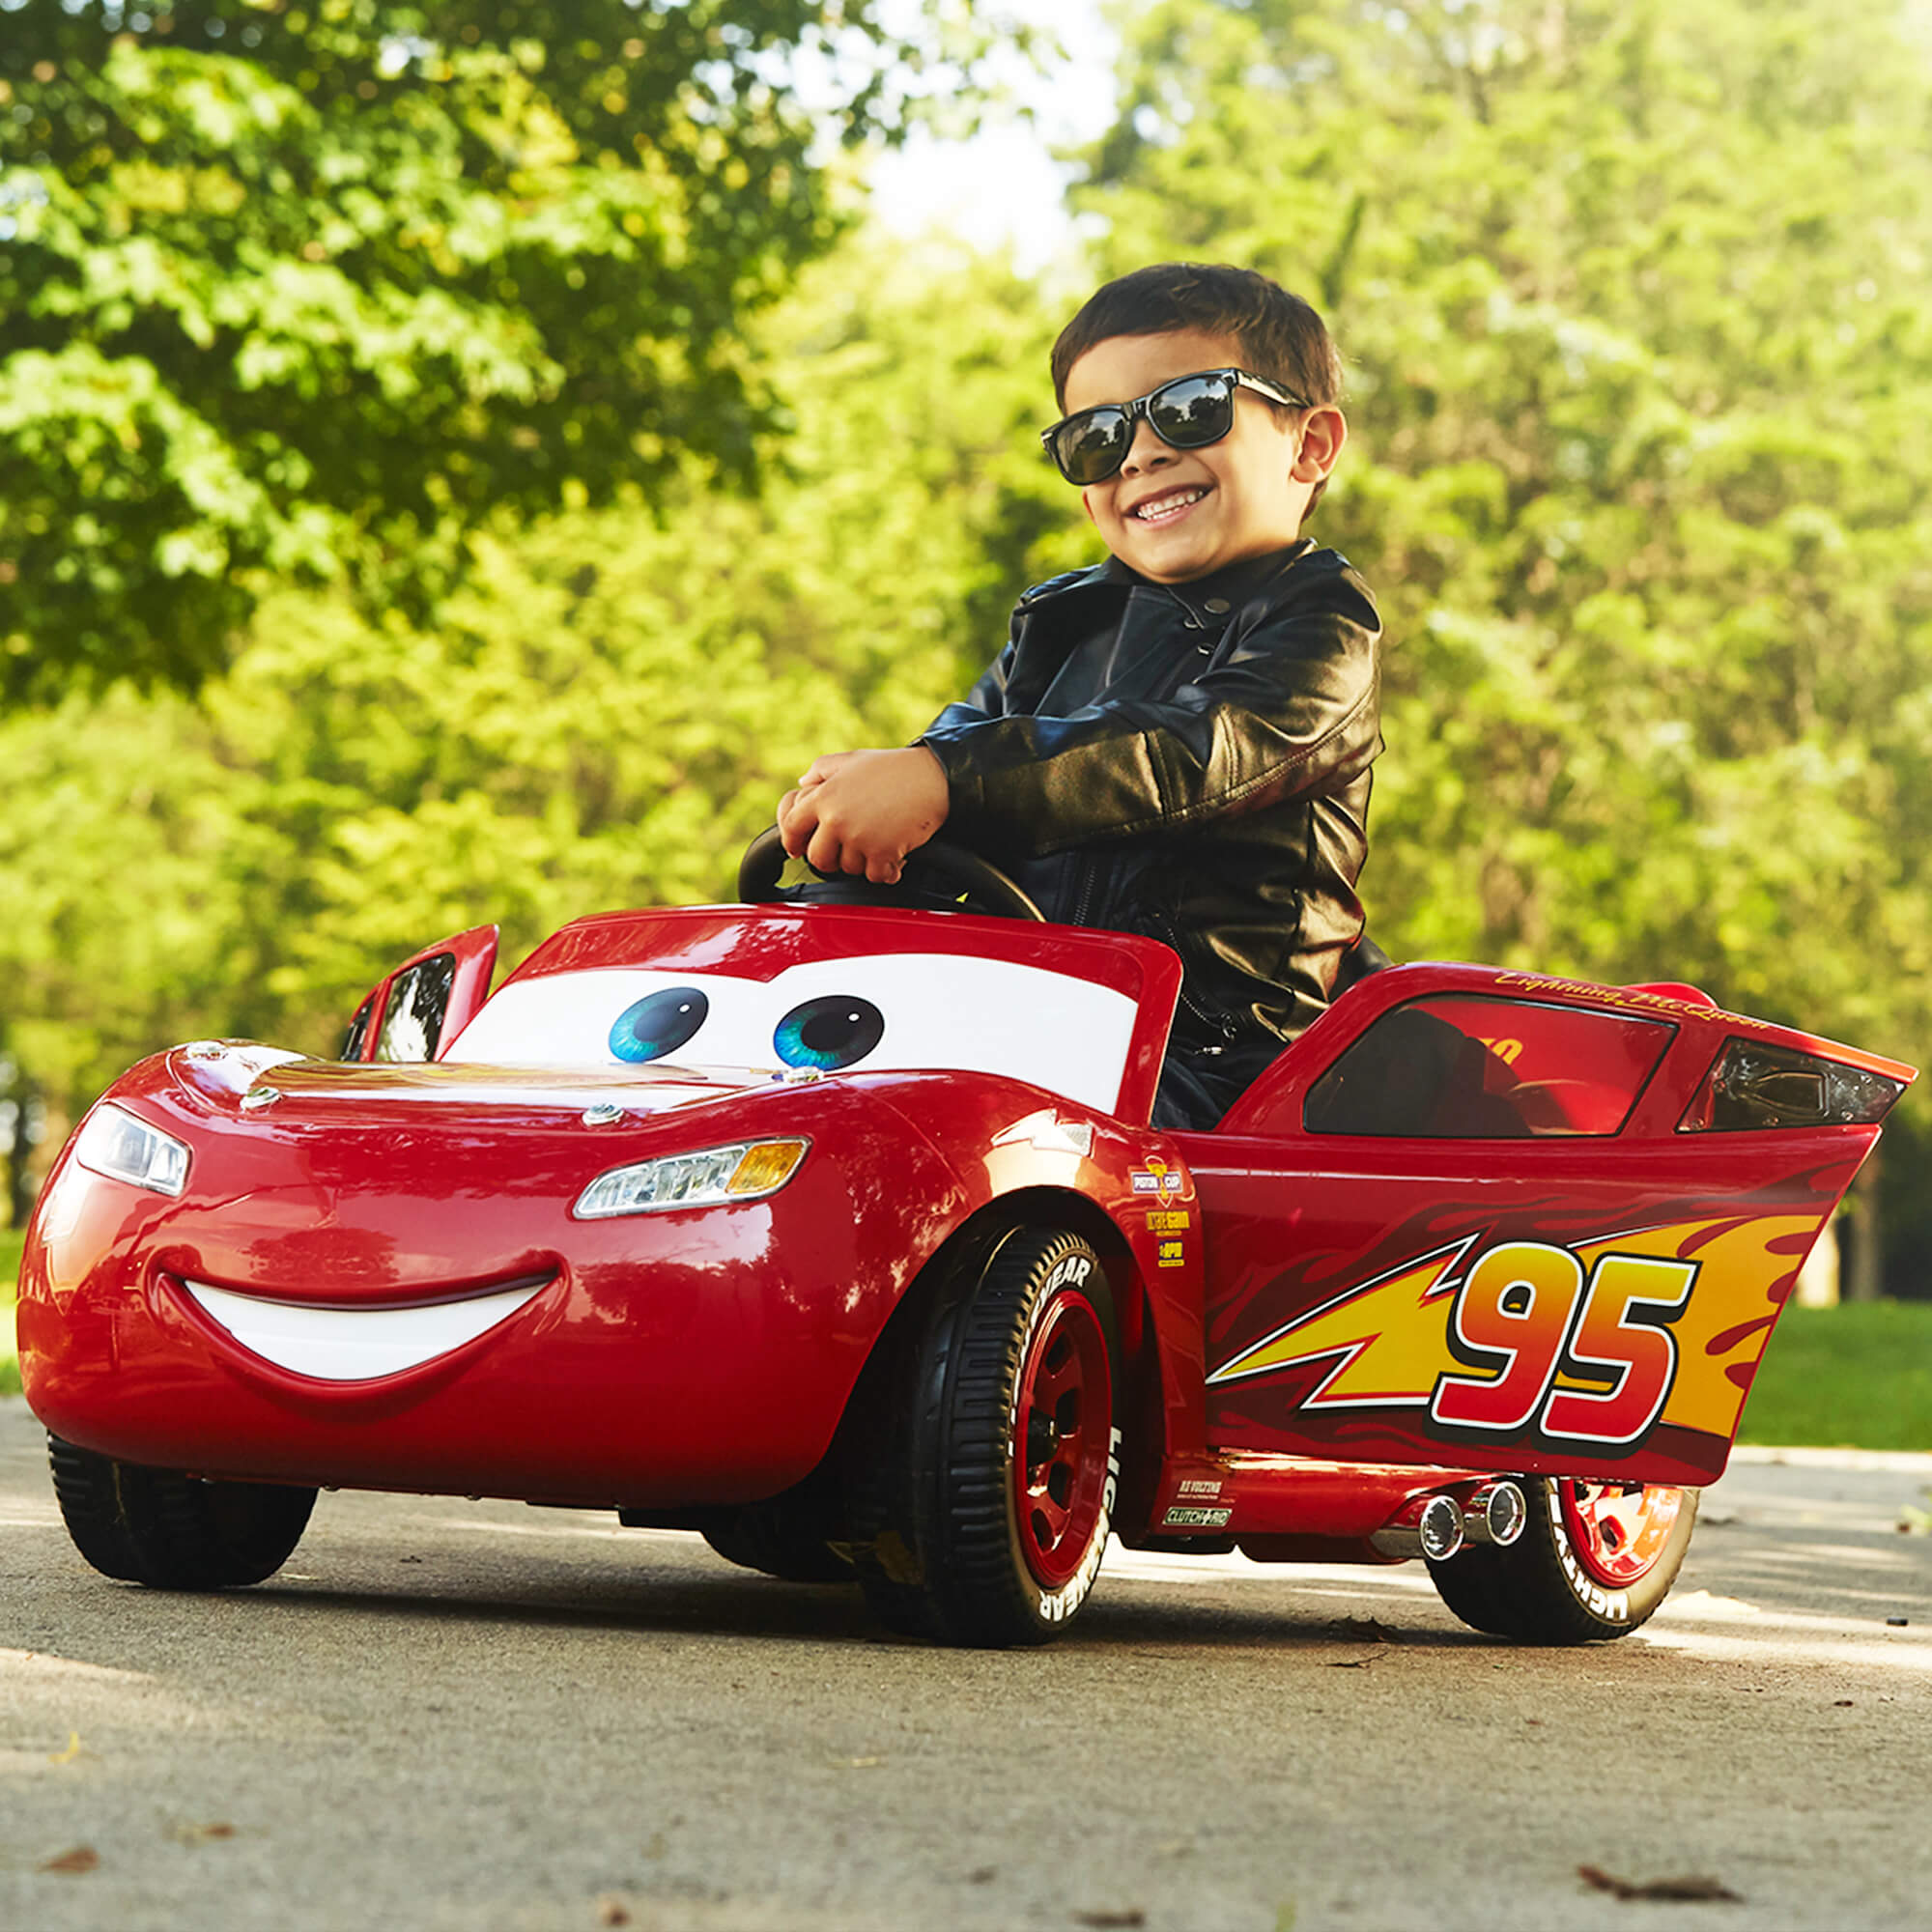 Disney Pixar Cars 3 Lightning McQueen 6V Battery-Powered Ride On by Huffy